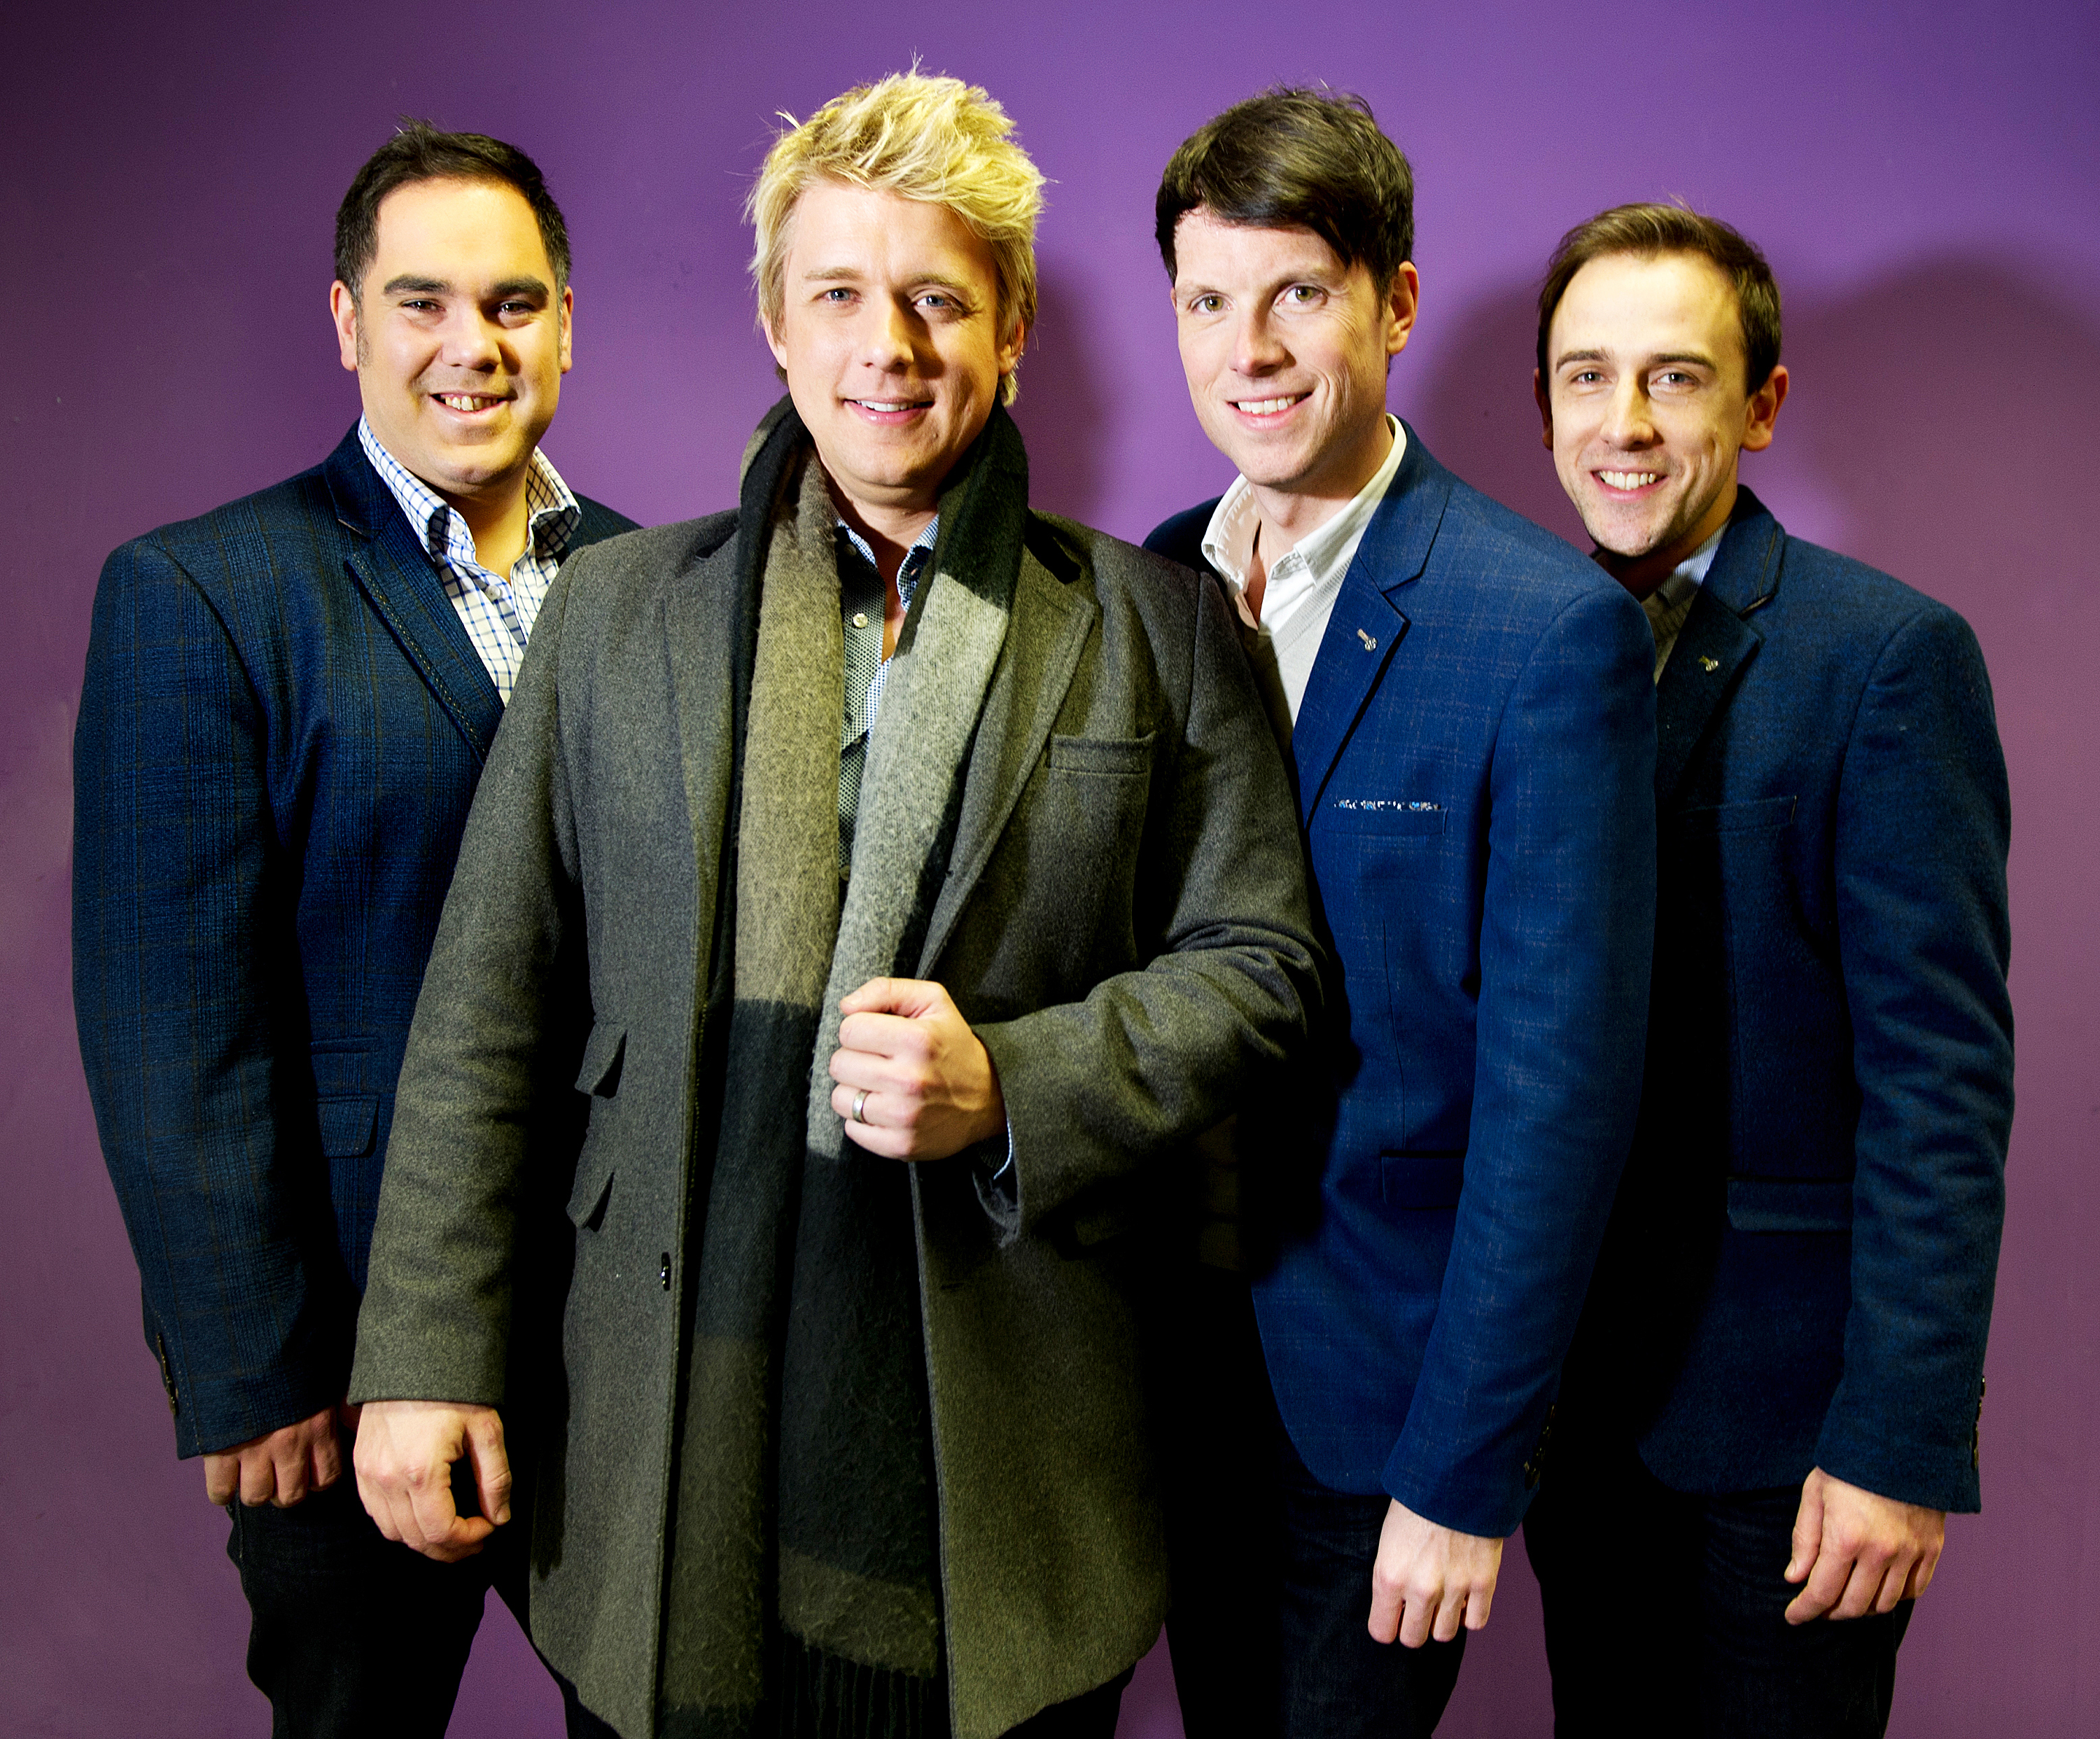 G4 singers Mike Christie and Jonathan Ansell 'very shaken' after Birmingham assault